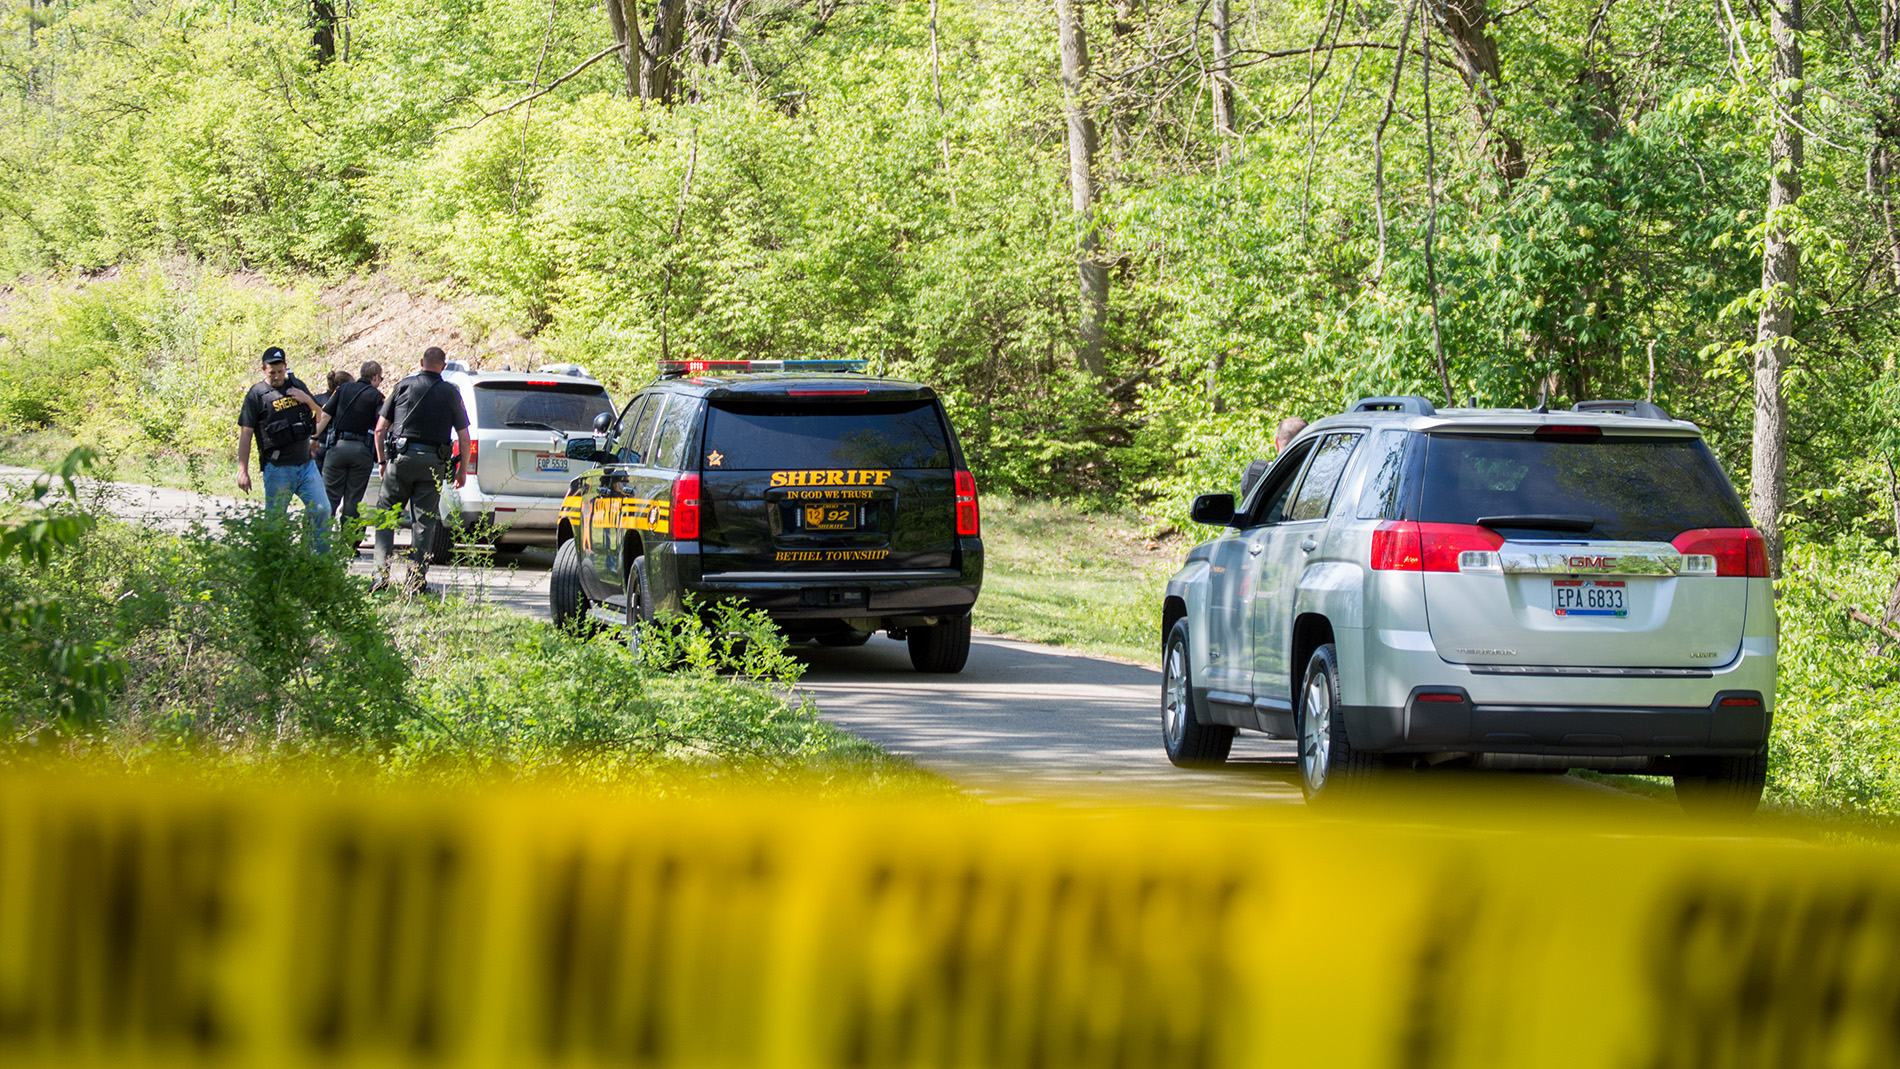 Ohio clark county new carlisle - The Clark County Sheriff S Department Is Investigating A Dead Body Found Along The Bike Path